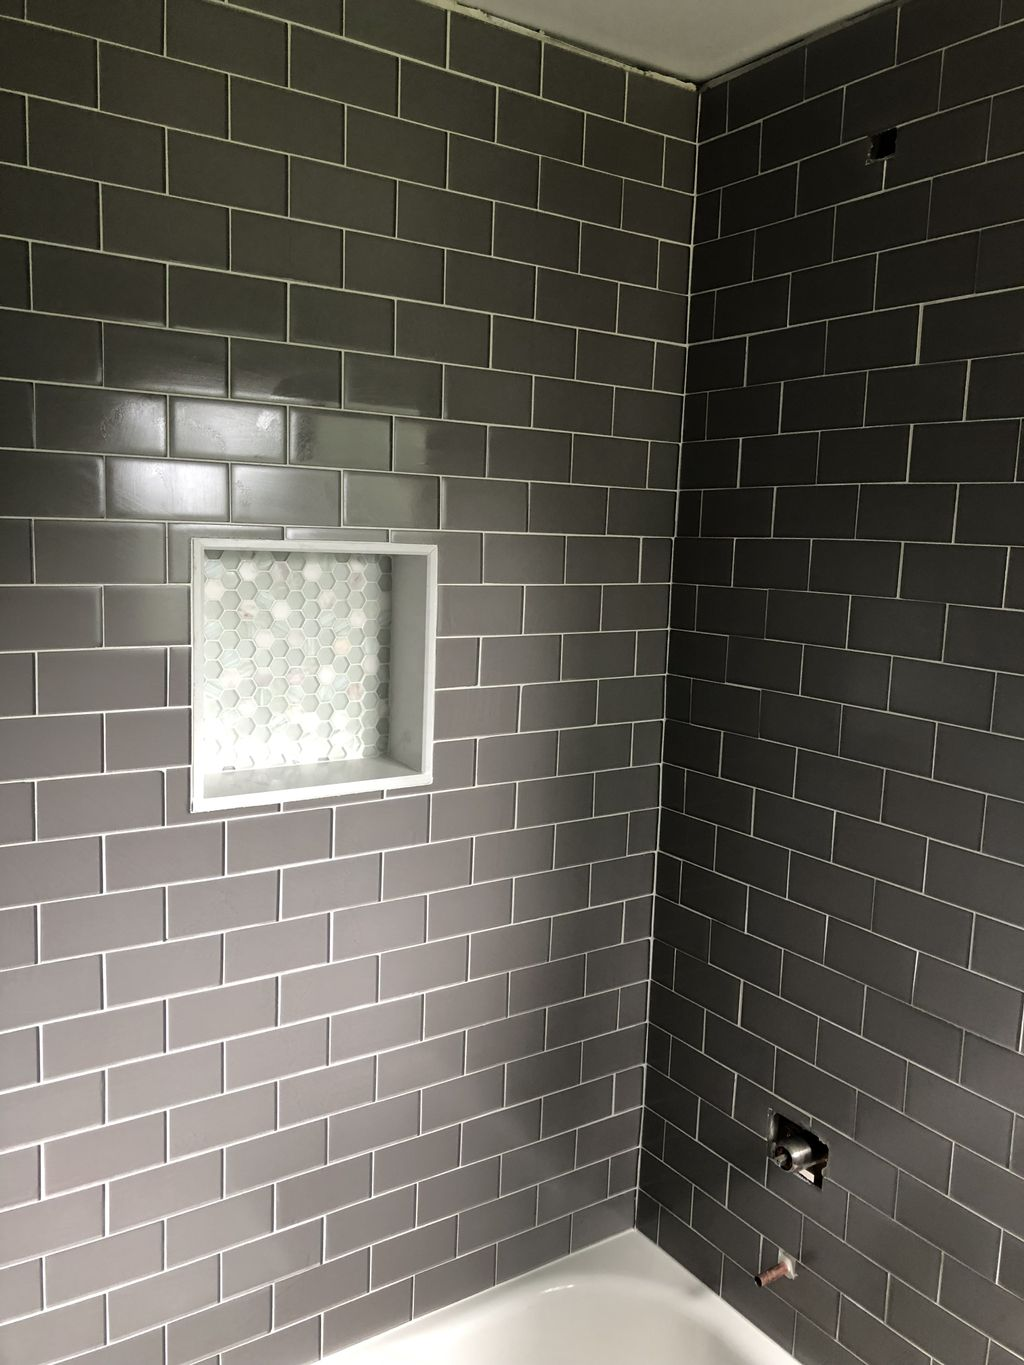 Tub surround with glass tile